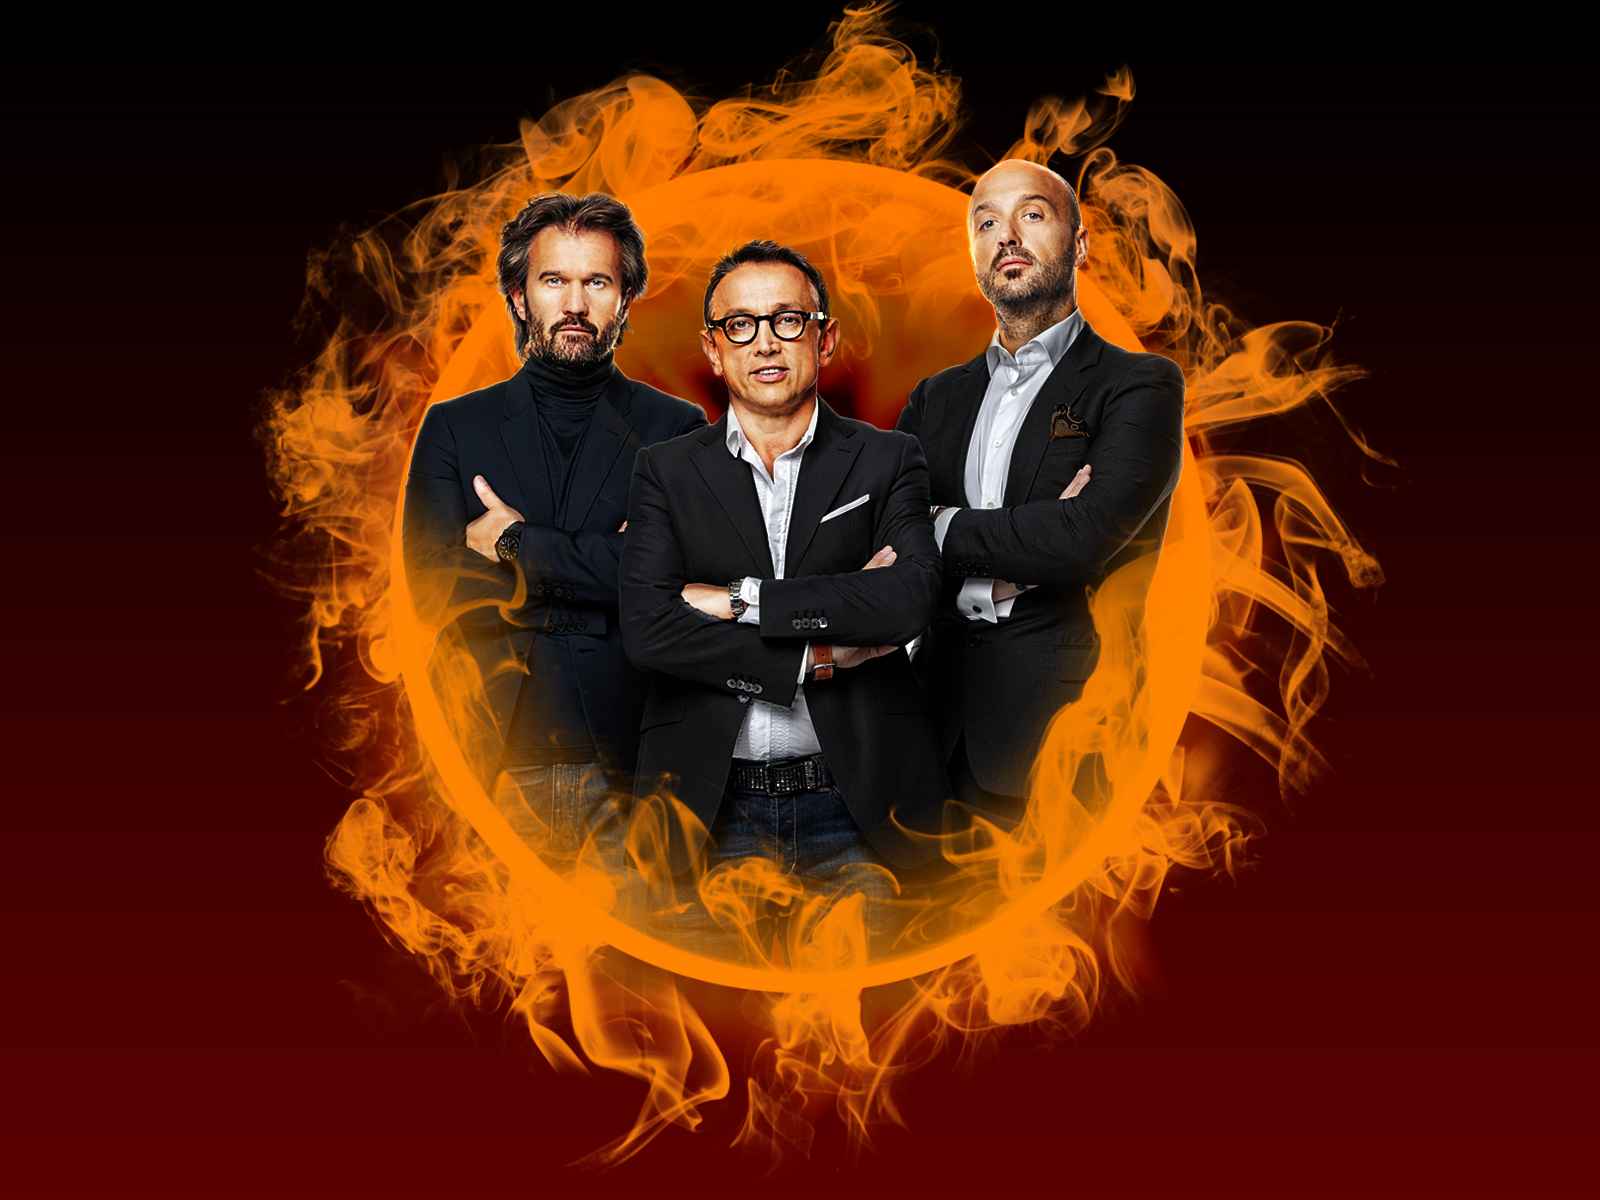 Carlo Cracco,Bruno Barbieri, Joe Bastianich, masterchef